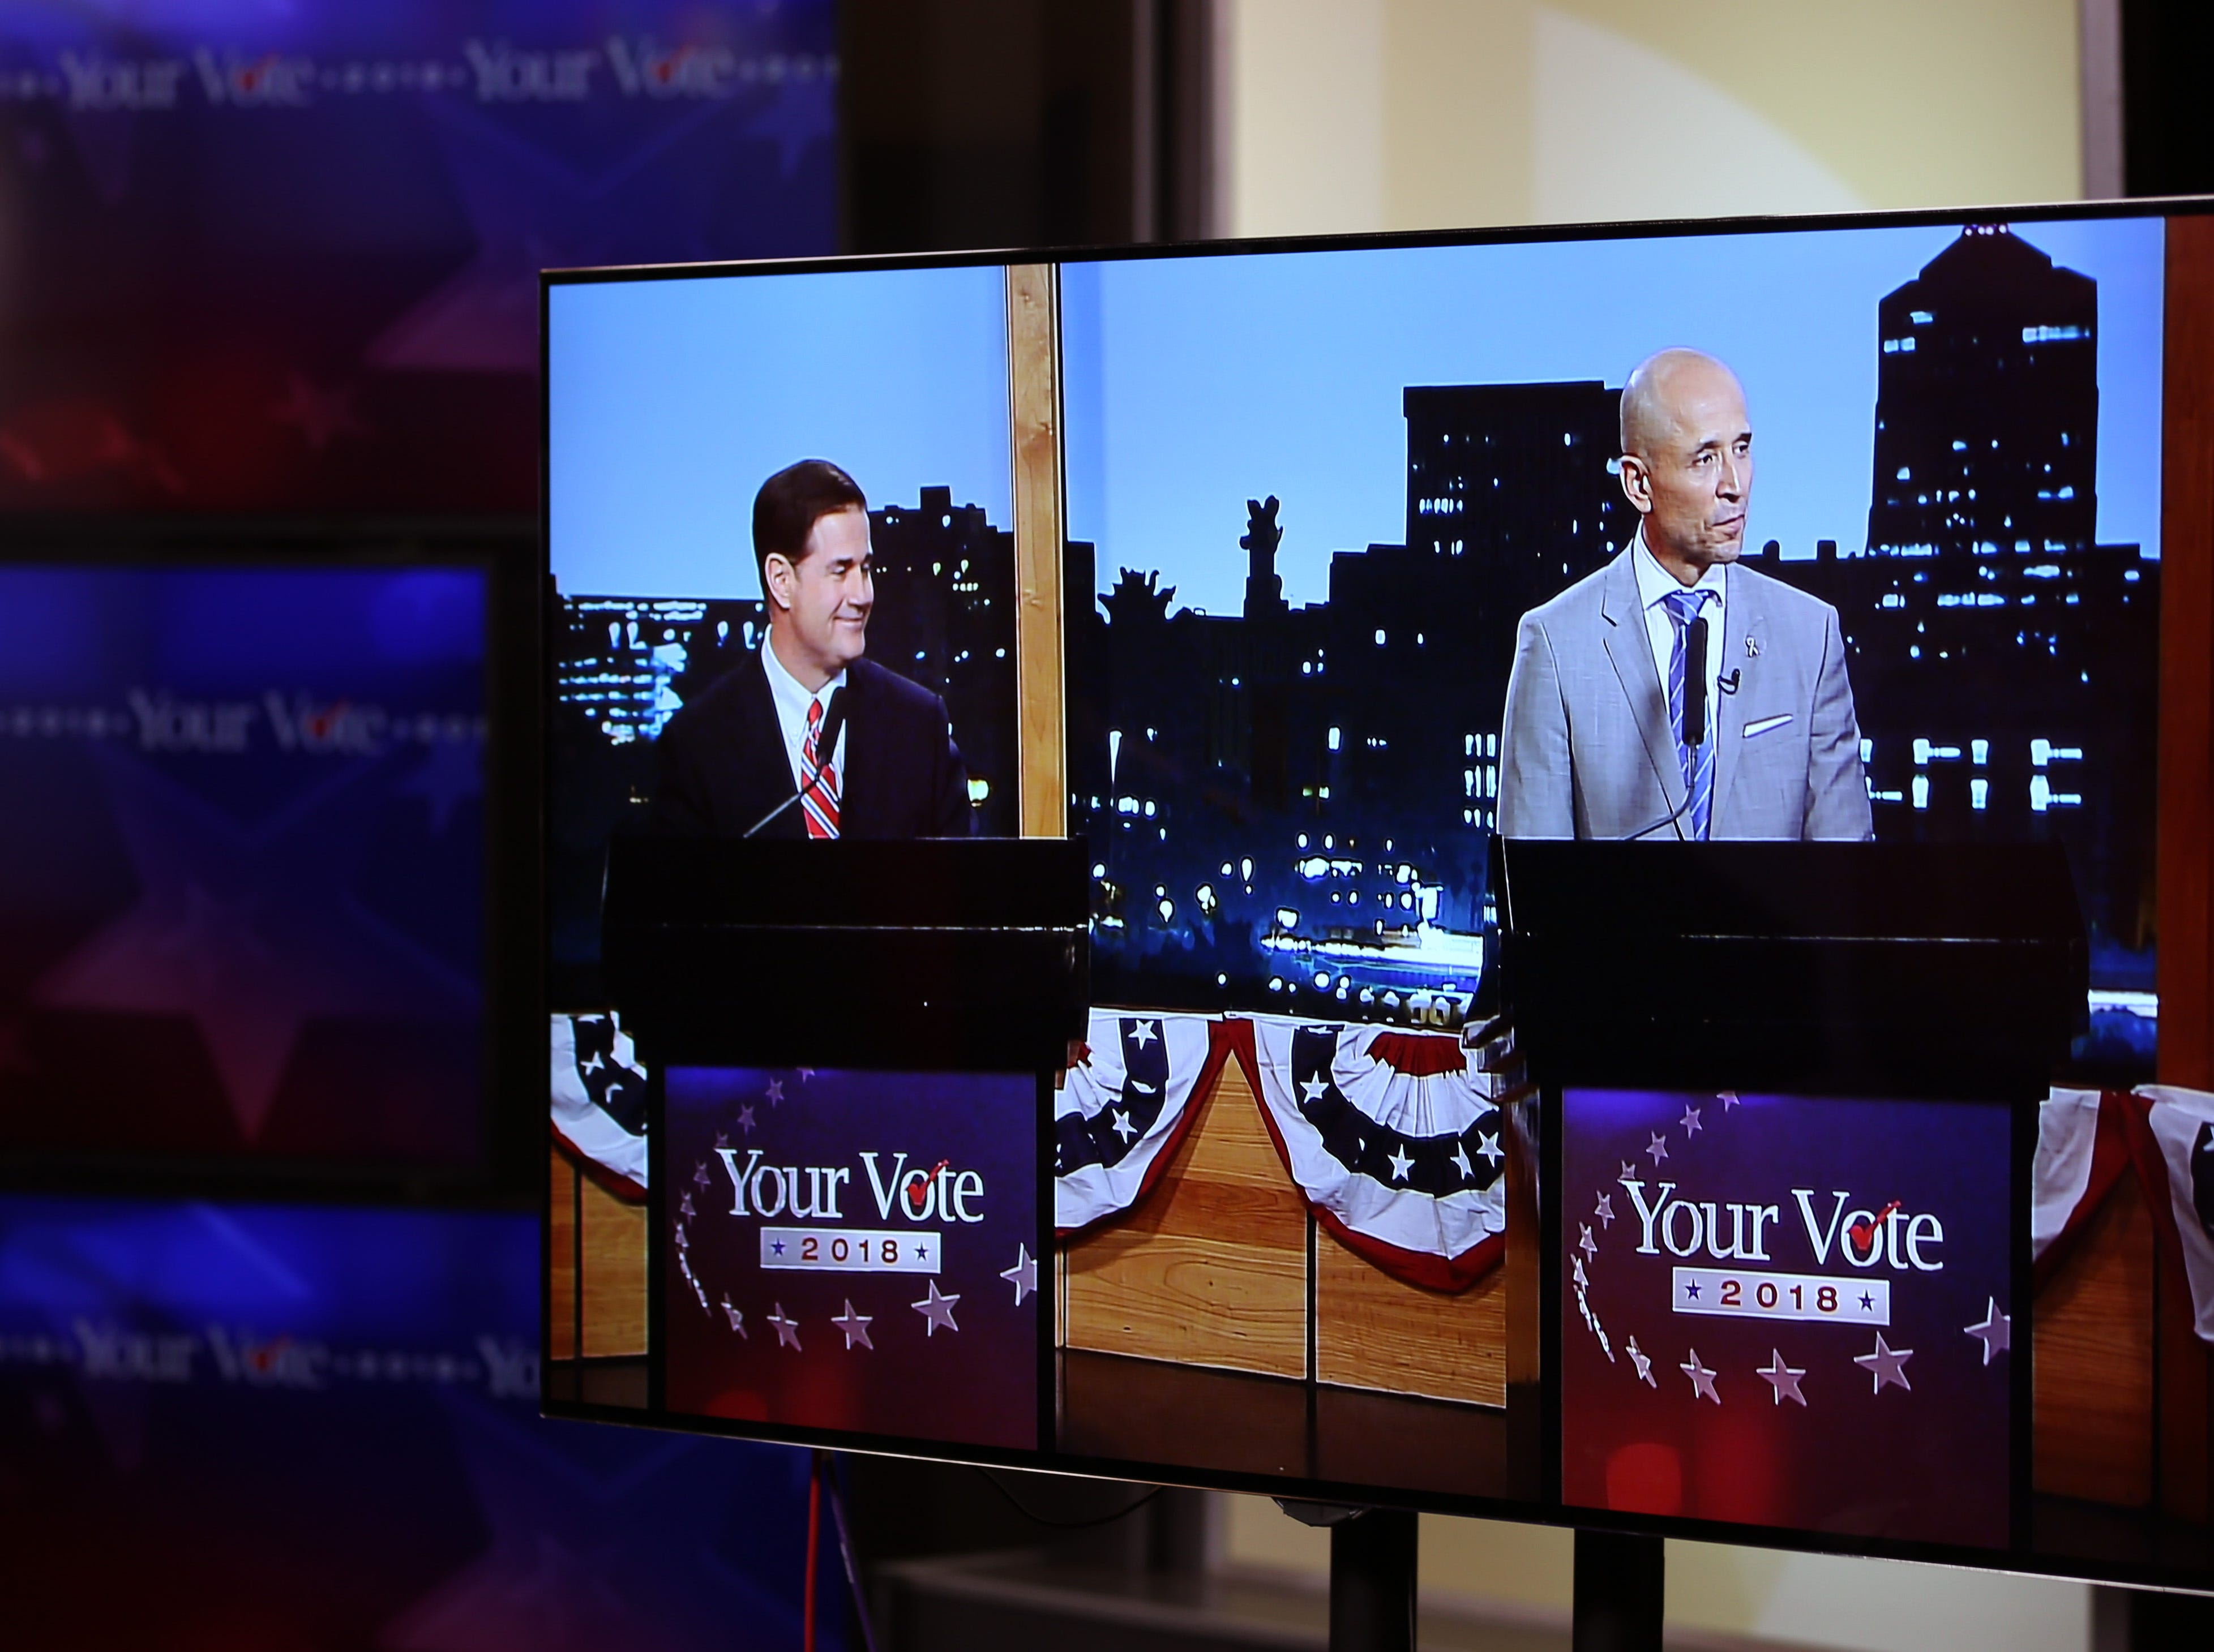 Gubernatorial candidates Republican Doug Ducey, left, and Democrat David Garcia, seen on monitors in an adjoining studio, wrap up a televised debate in the AZPM studios, Tuesday, Sept. 25, 2018, in Tucson.